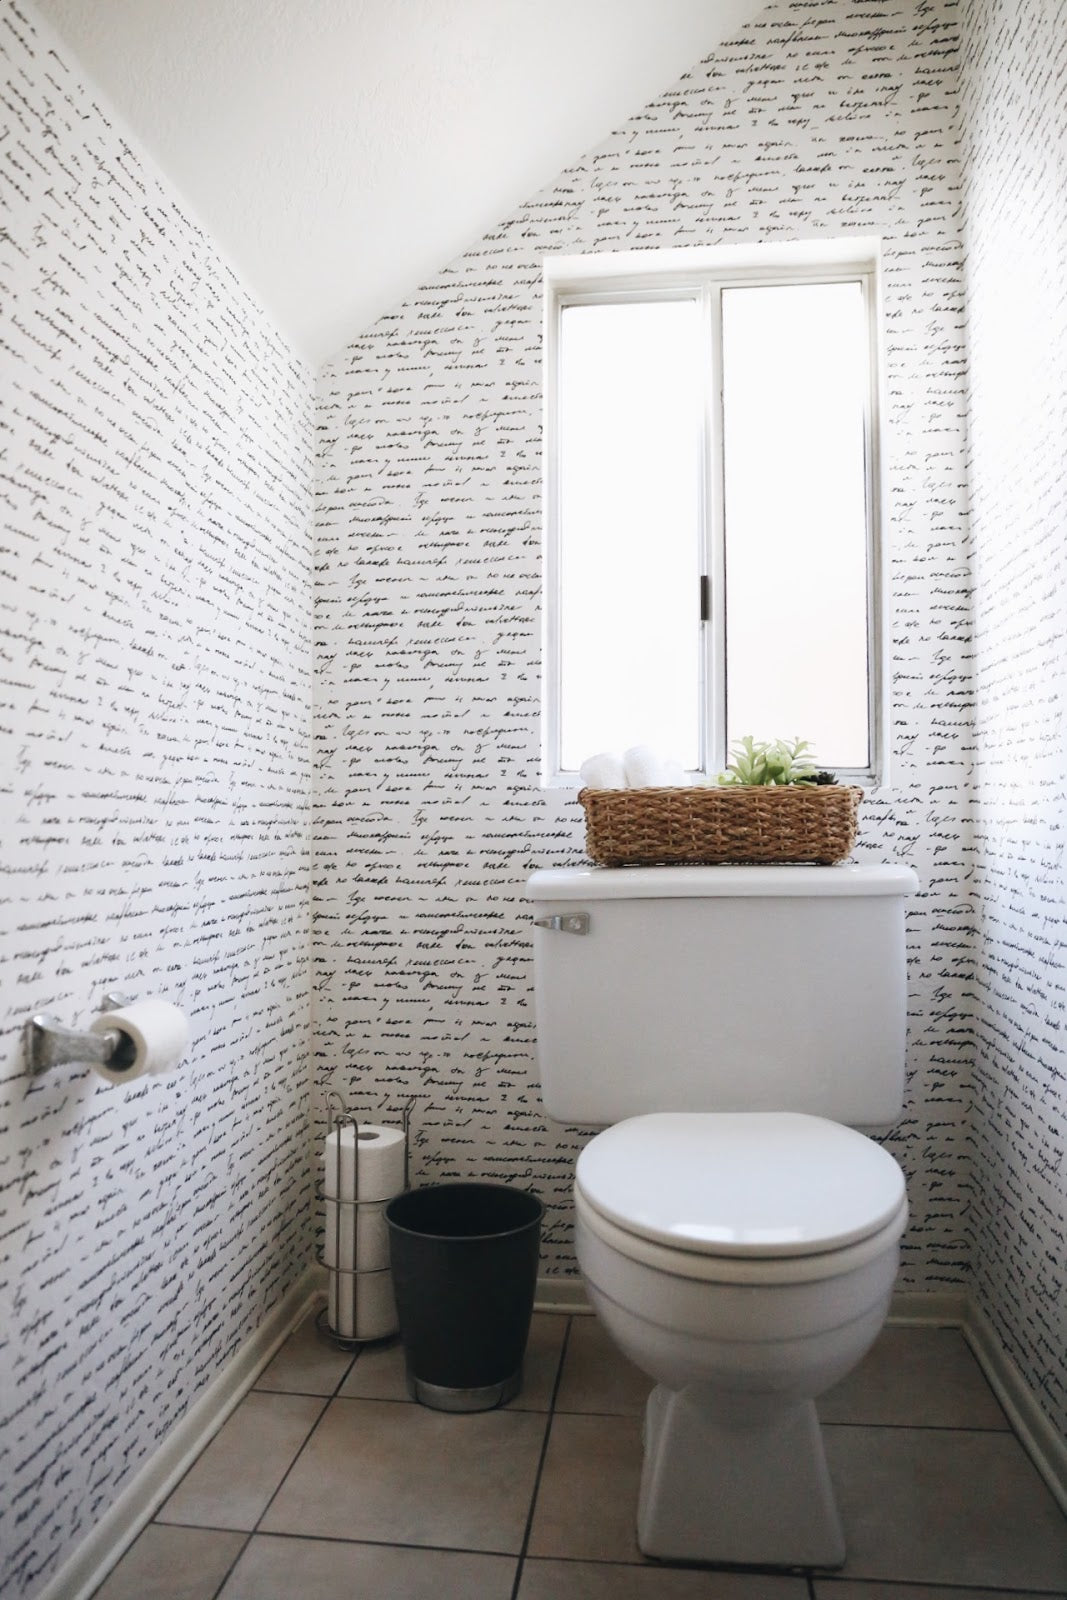 Go Bold in Small Spaces with Removable Wallpaper — WallsNeedLove